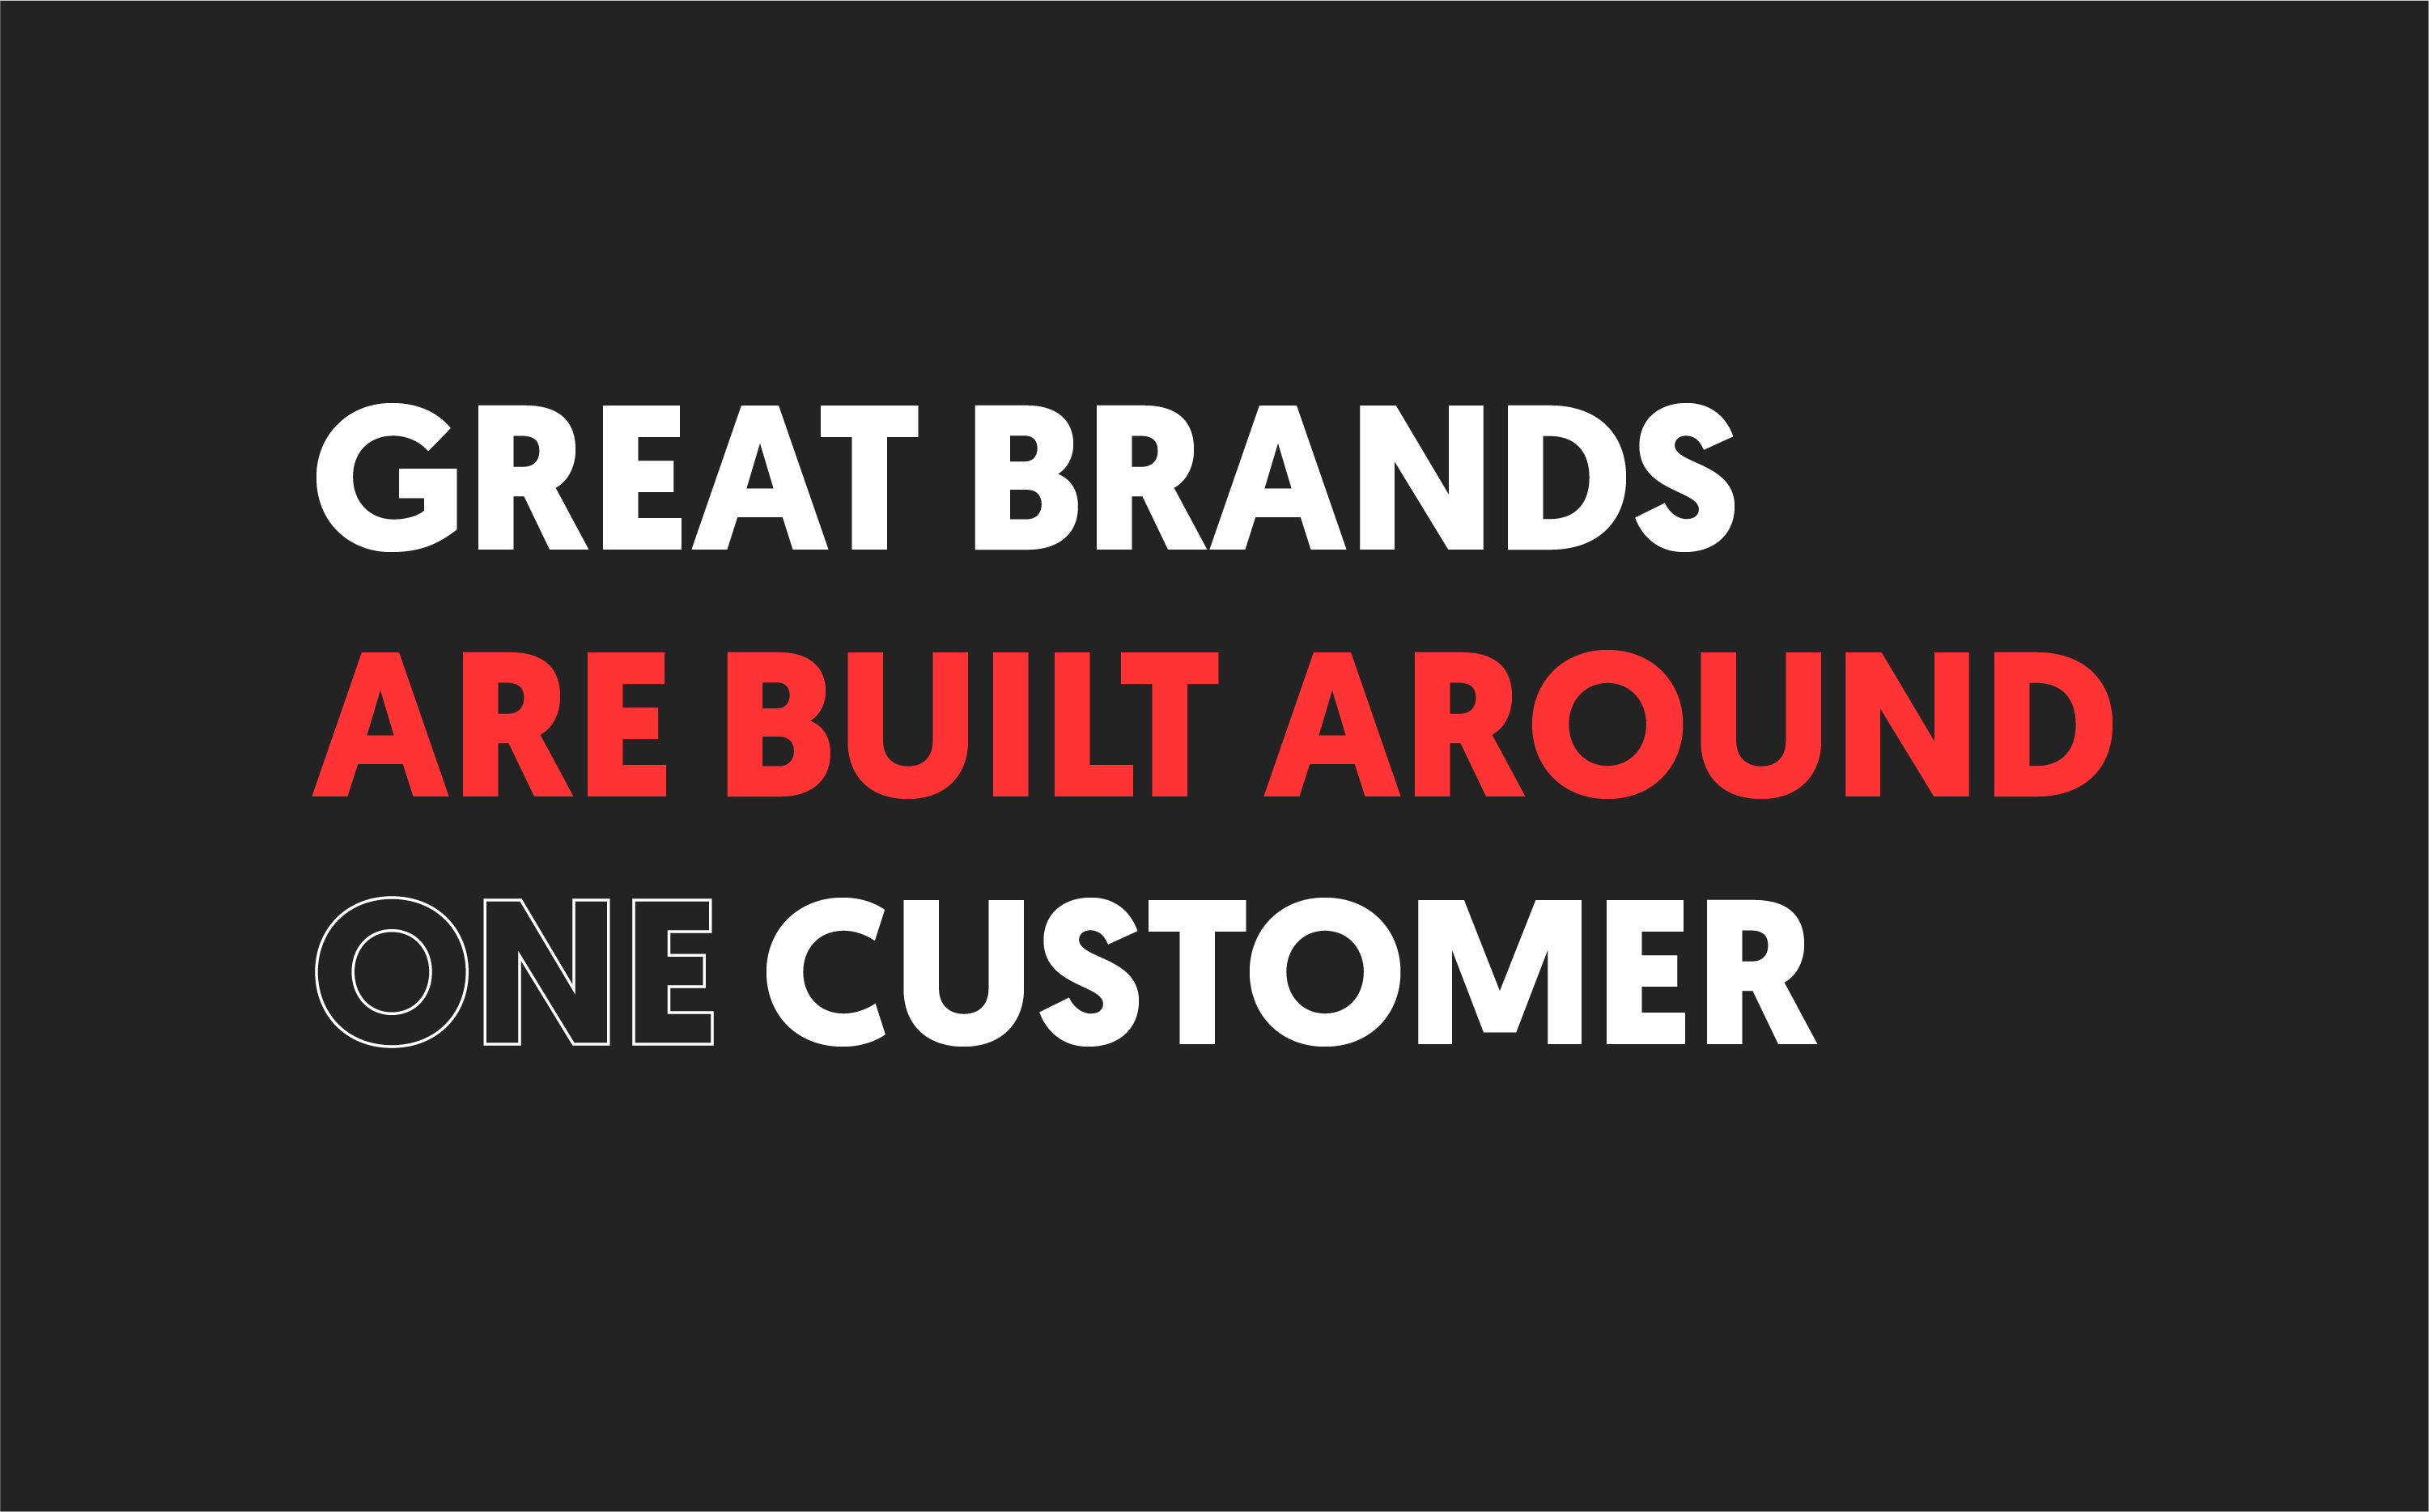 Brands target one customer. You can't market to everyone. Get to know your customers.